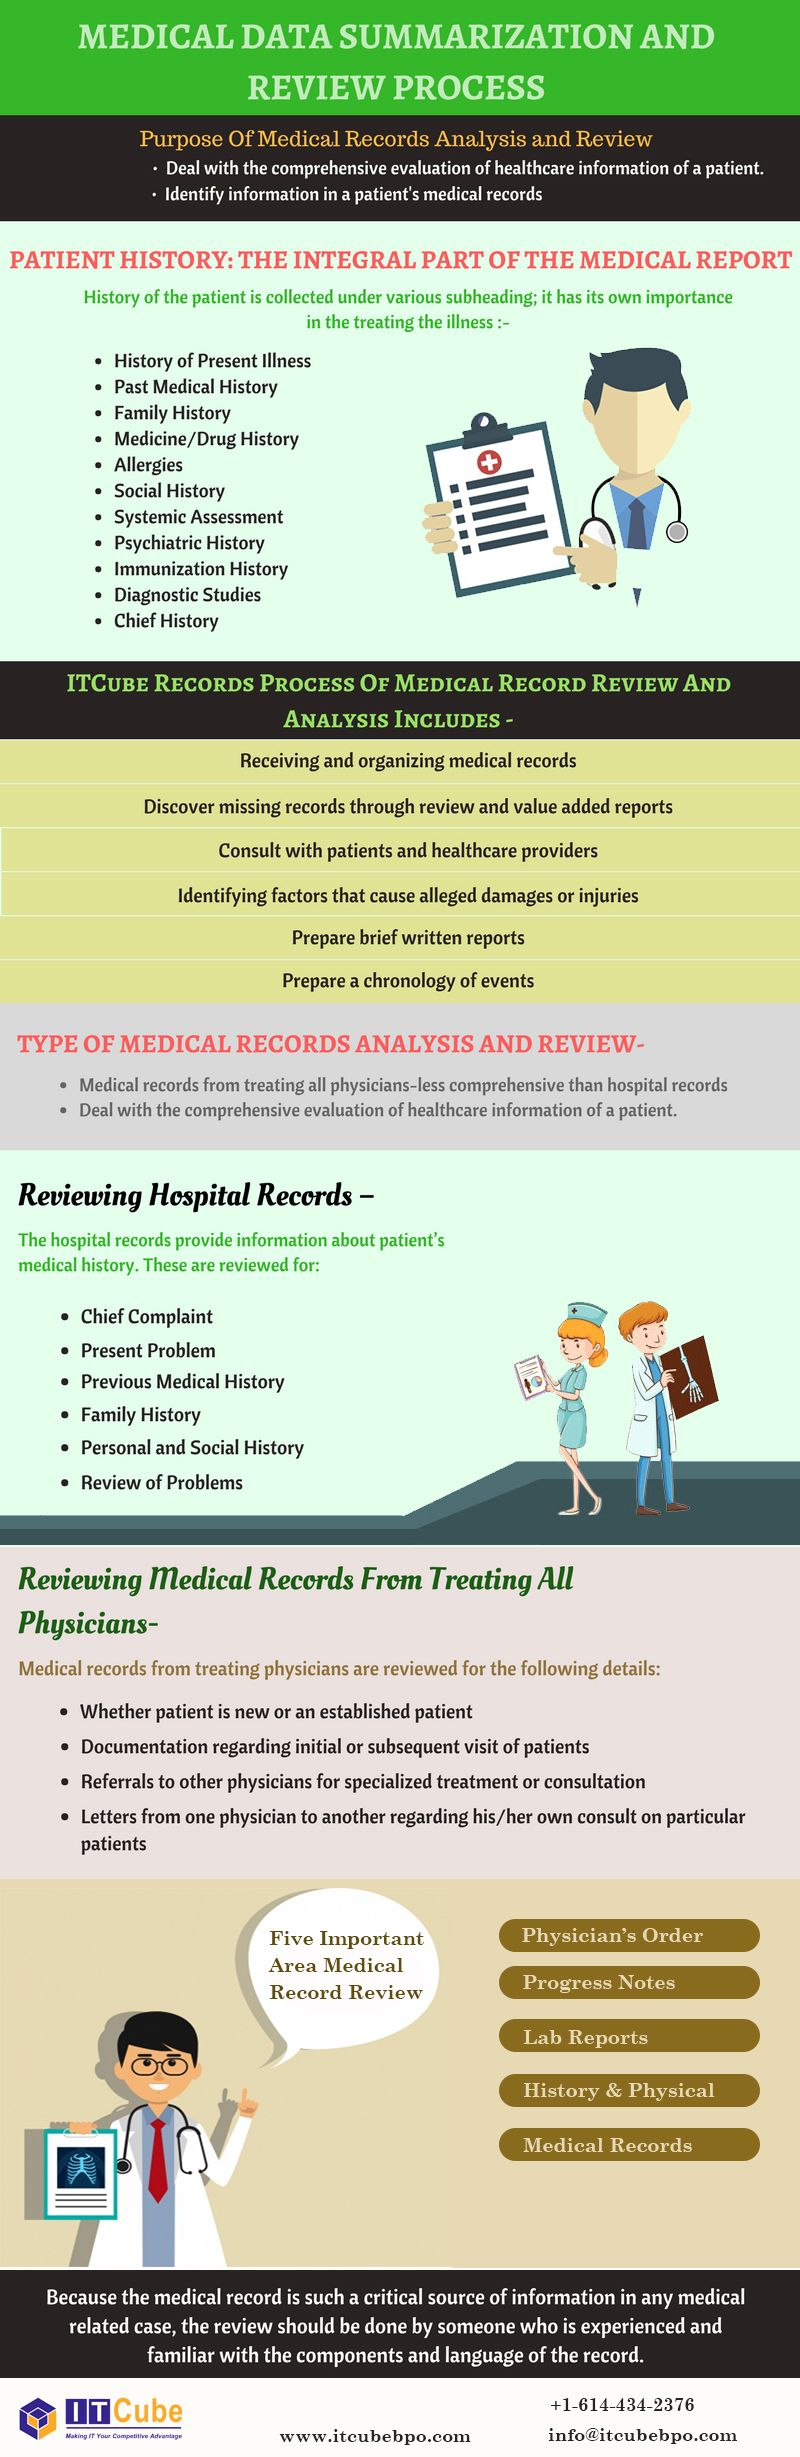 Medical Records Are Used To Provide